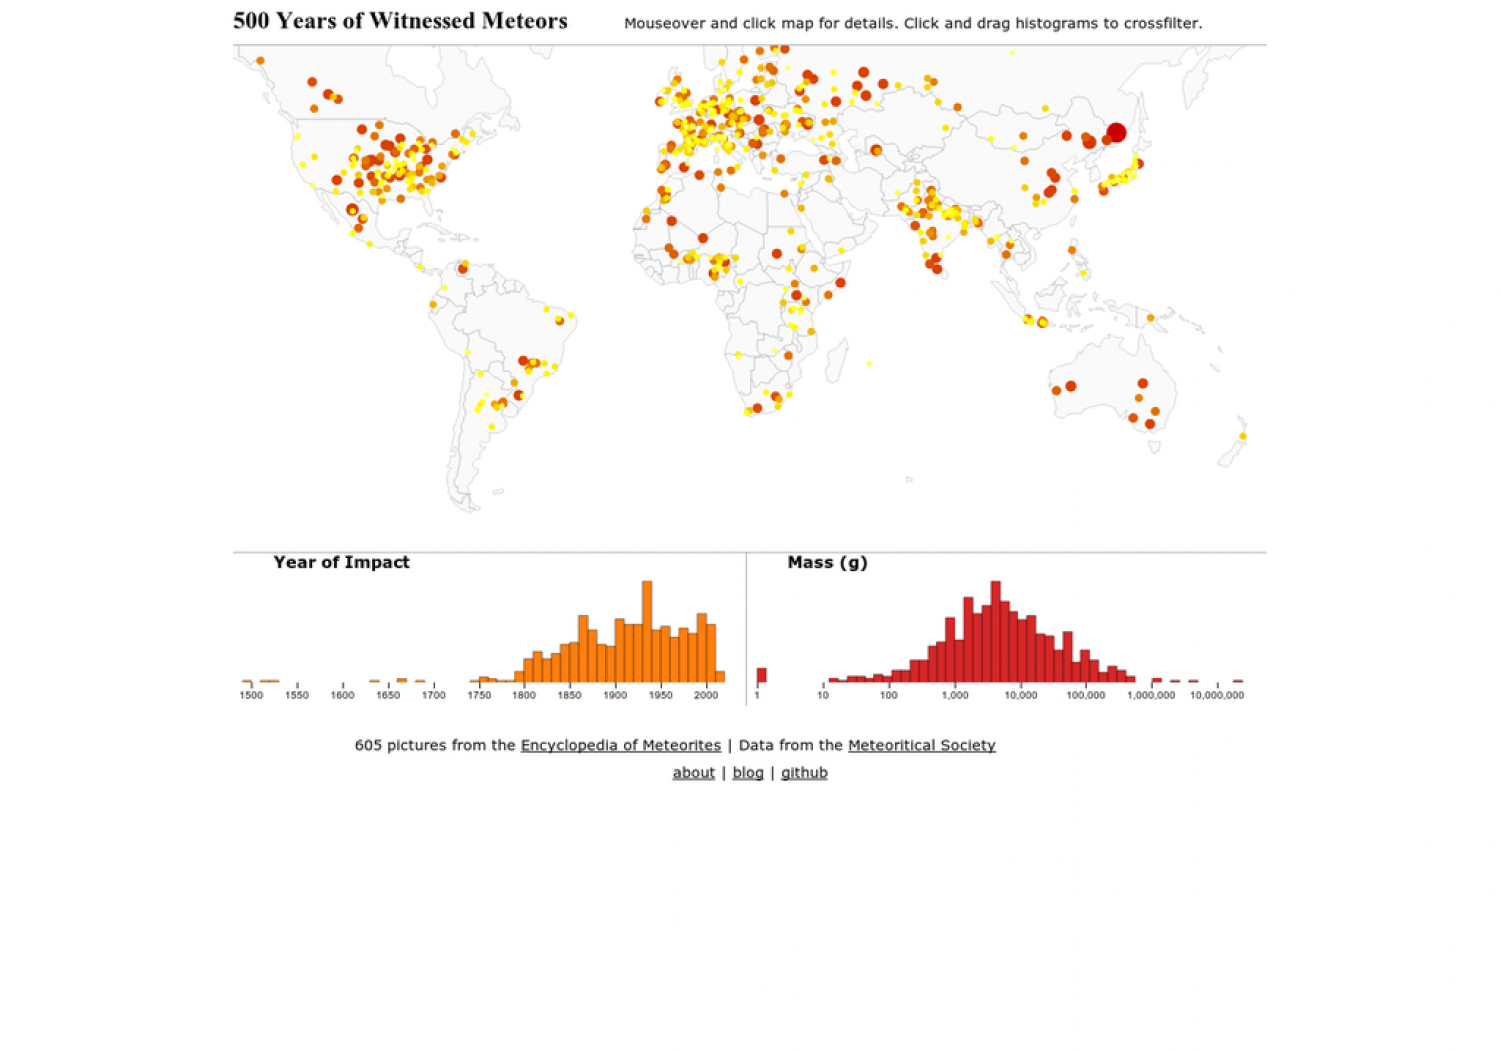 500 Years of Witnessed Meteors Infographic